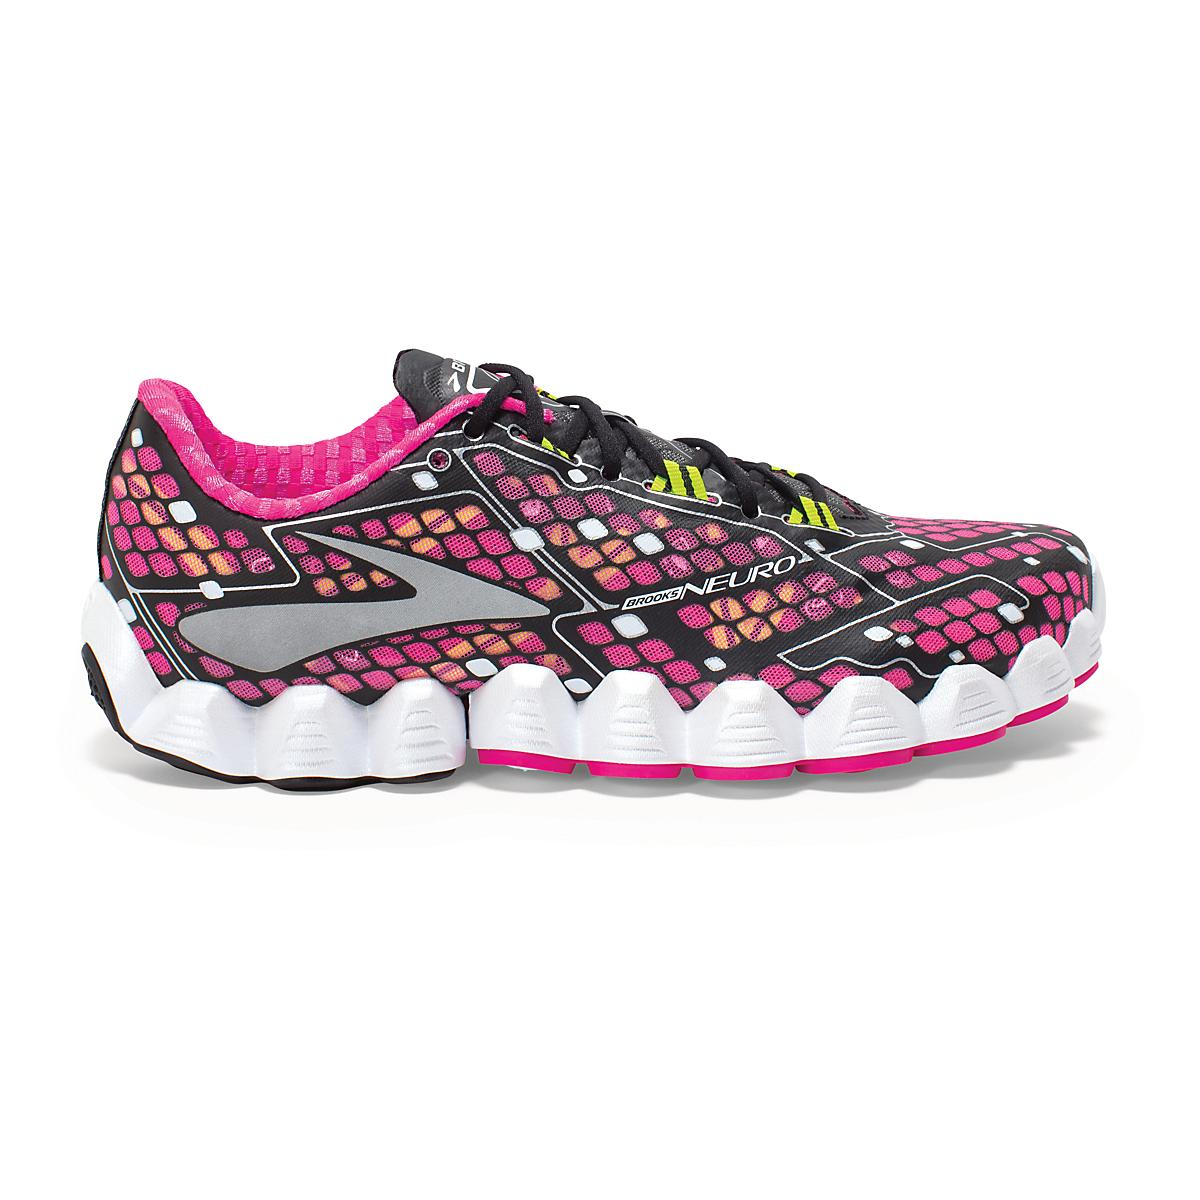 480d89167f9 Womens Brooks Neuro Running Shoe at Road Runner Sports